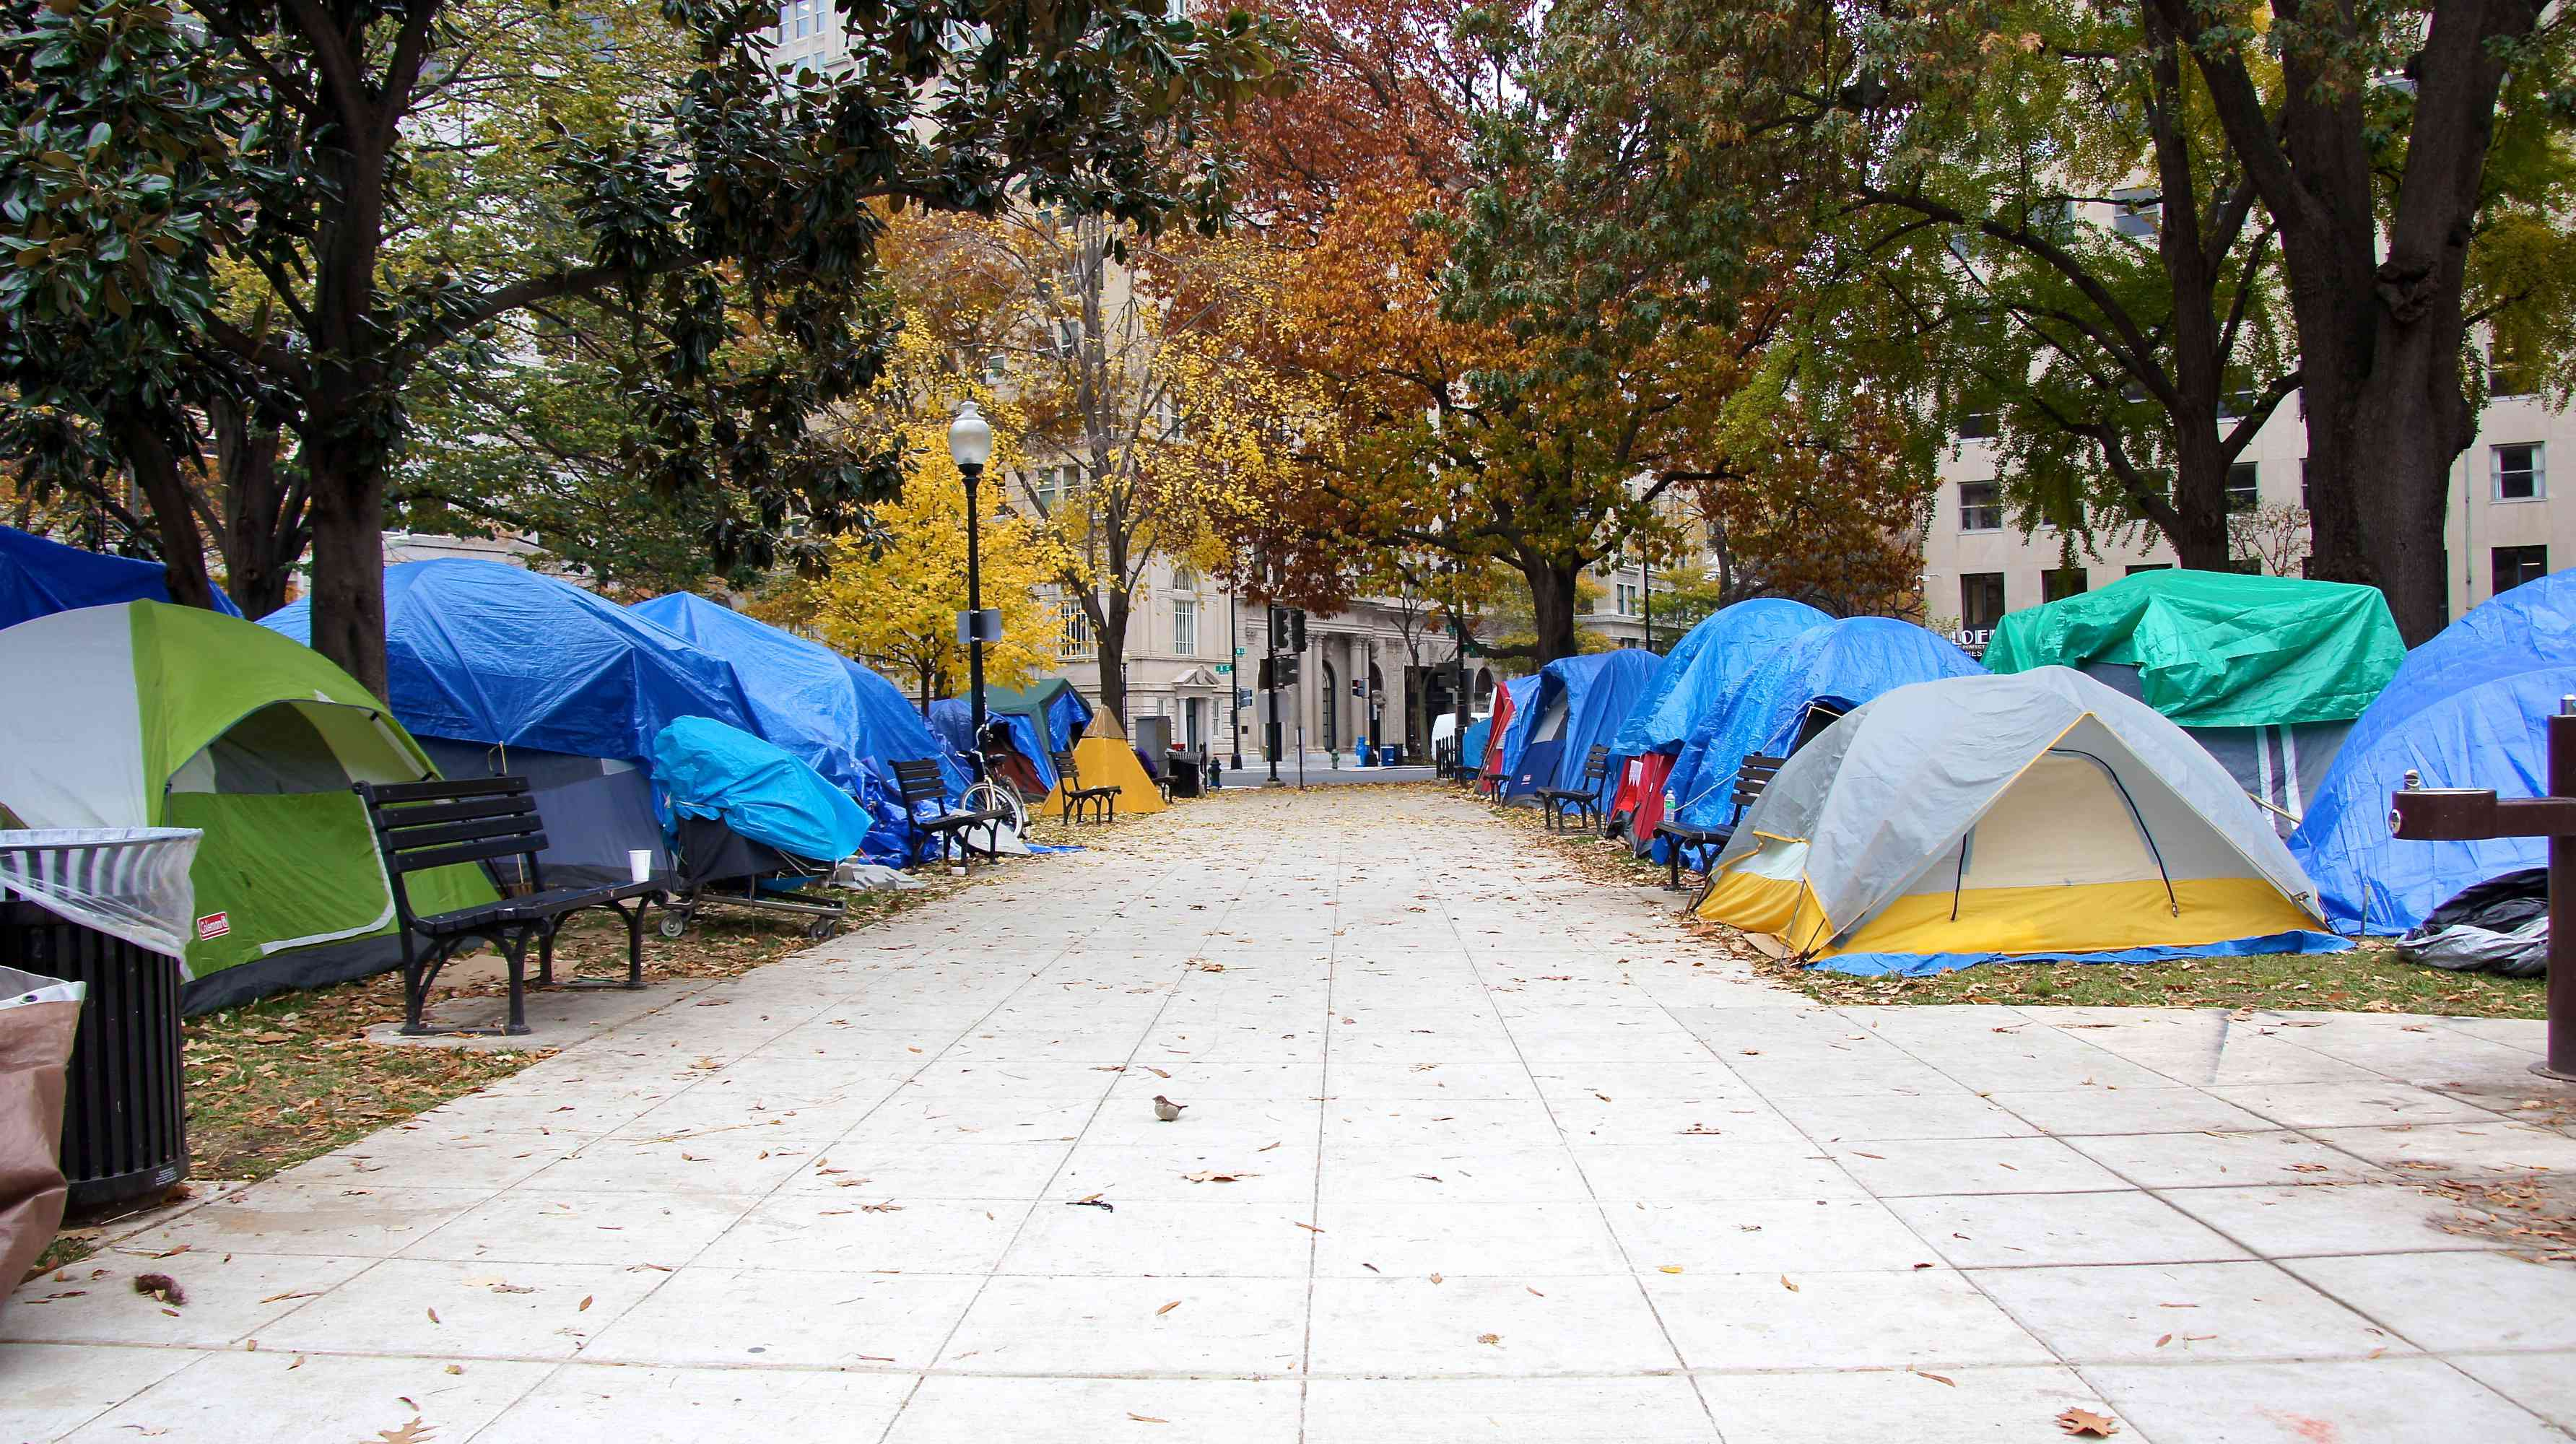 A row of tents in McPherson Square in Washington, D.C.